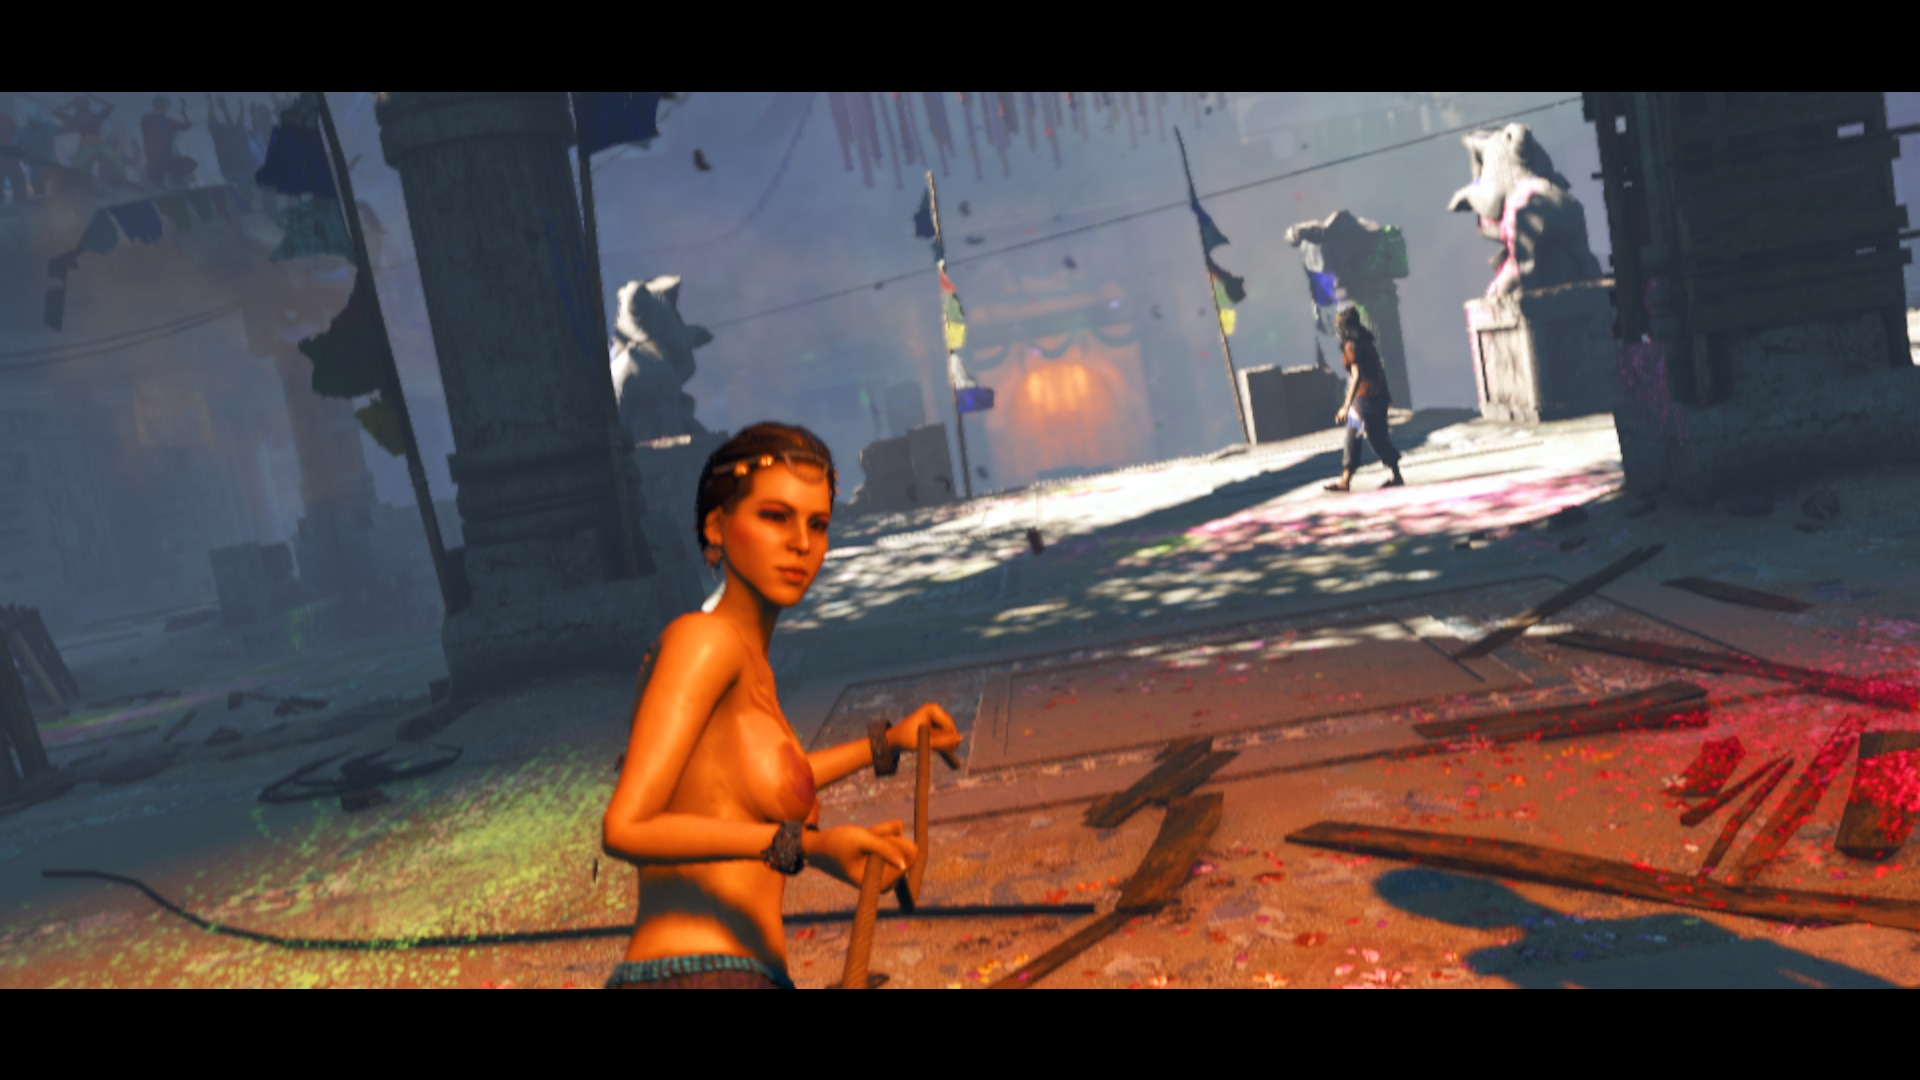 Nude mod for far cry exposed images